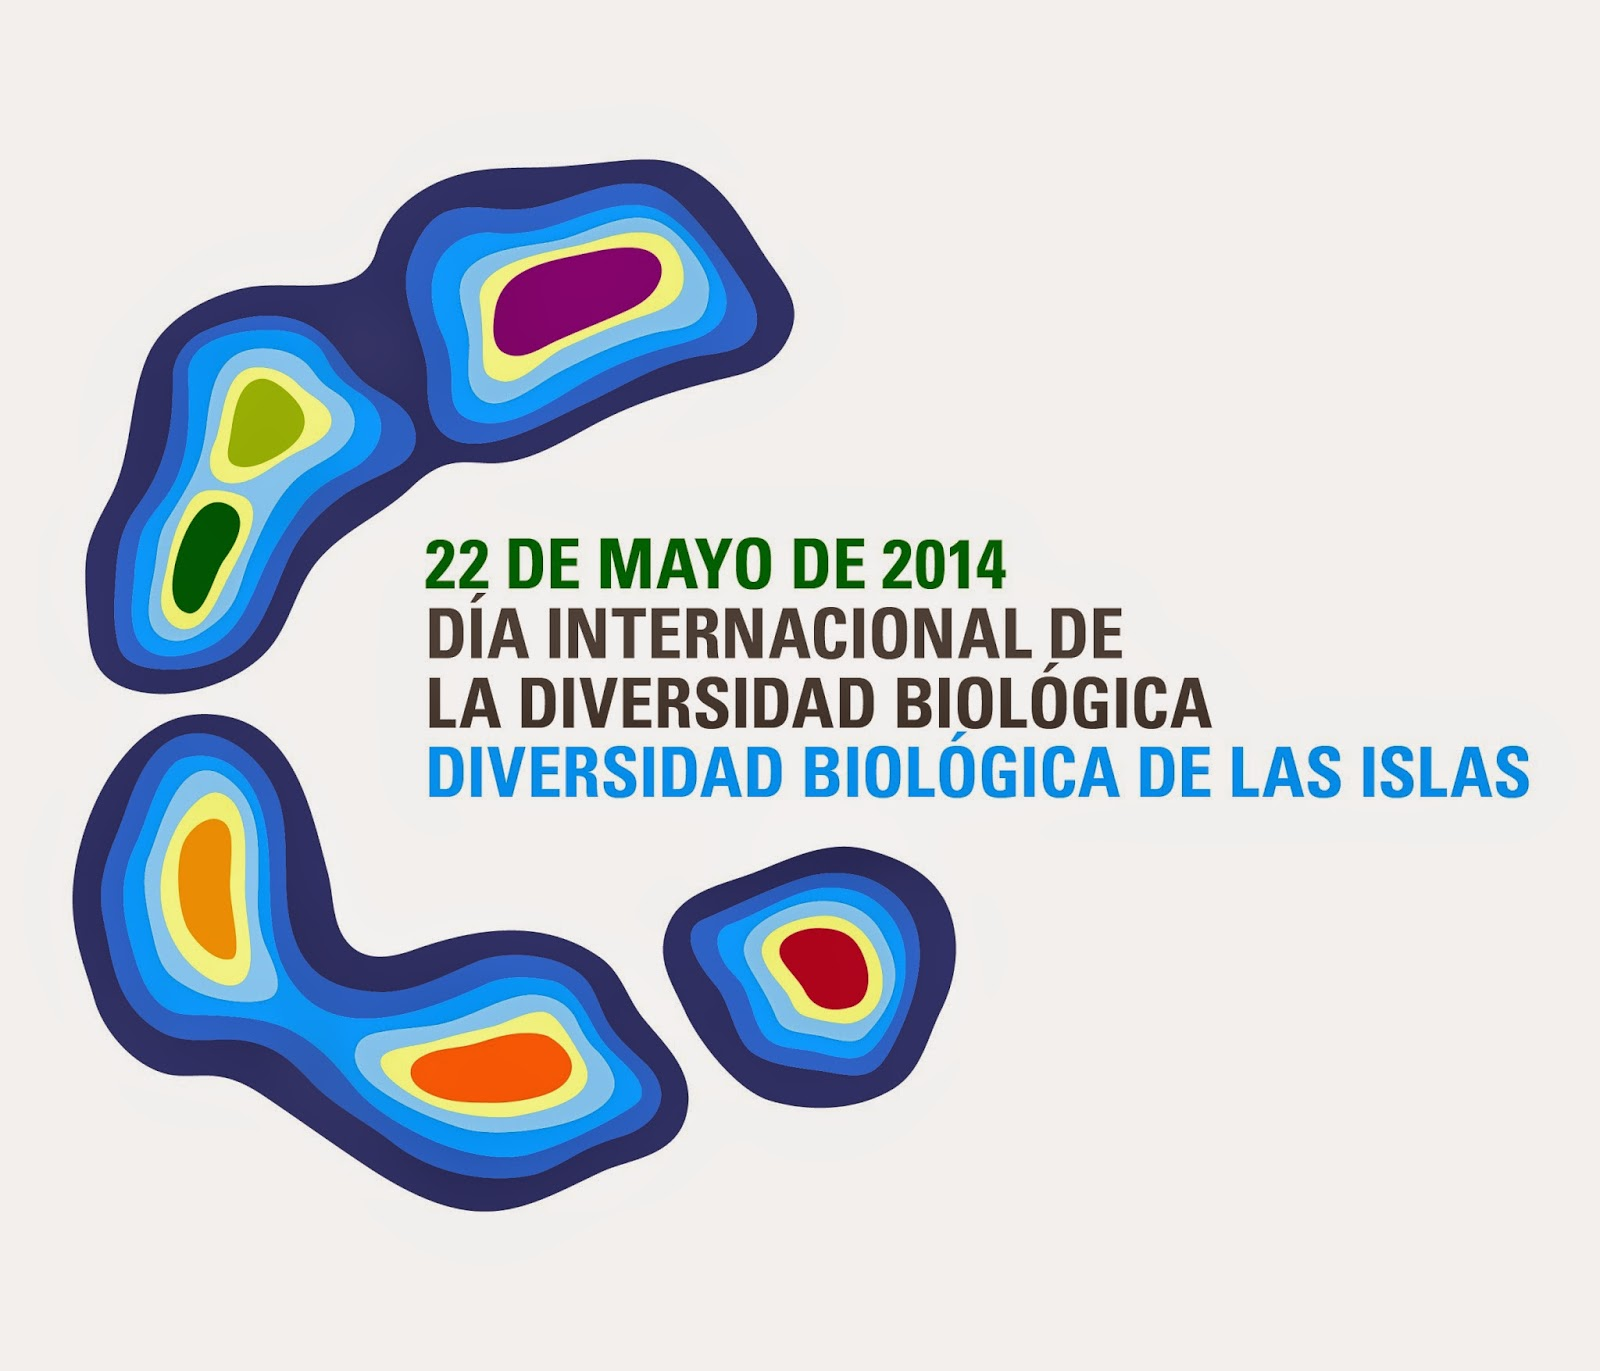 http://www.un.org/es/events/biodiversityday/